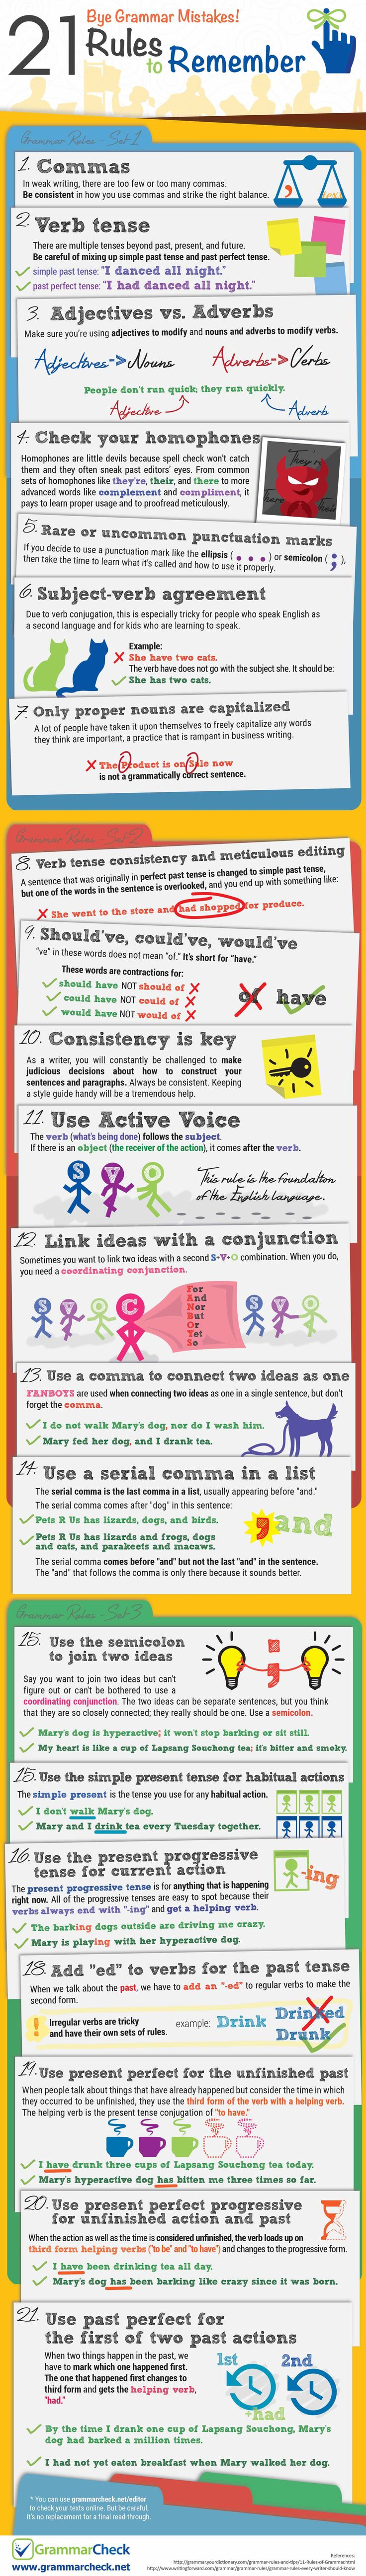 bye grammar mistakes  21 rules to remember  infographic